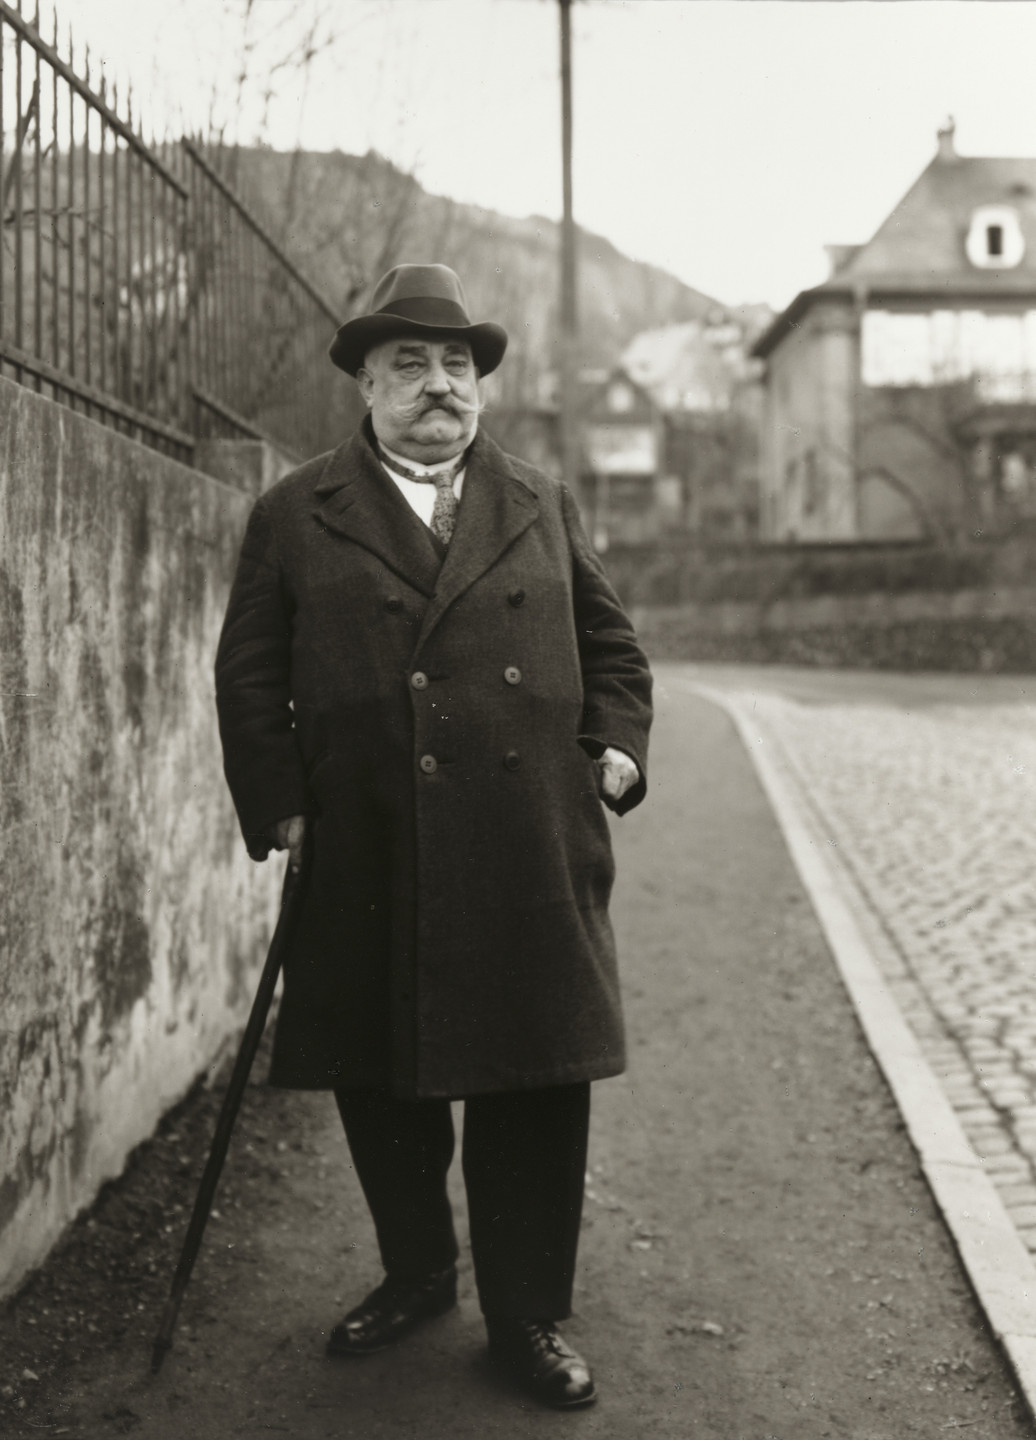 August Sander. Commercial Traveler. 1930